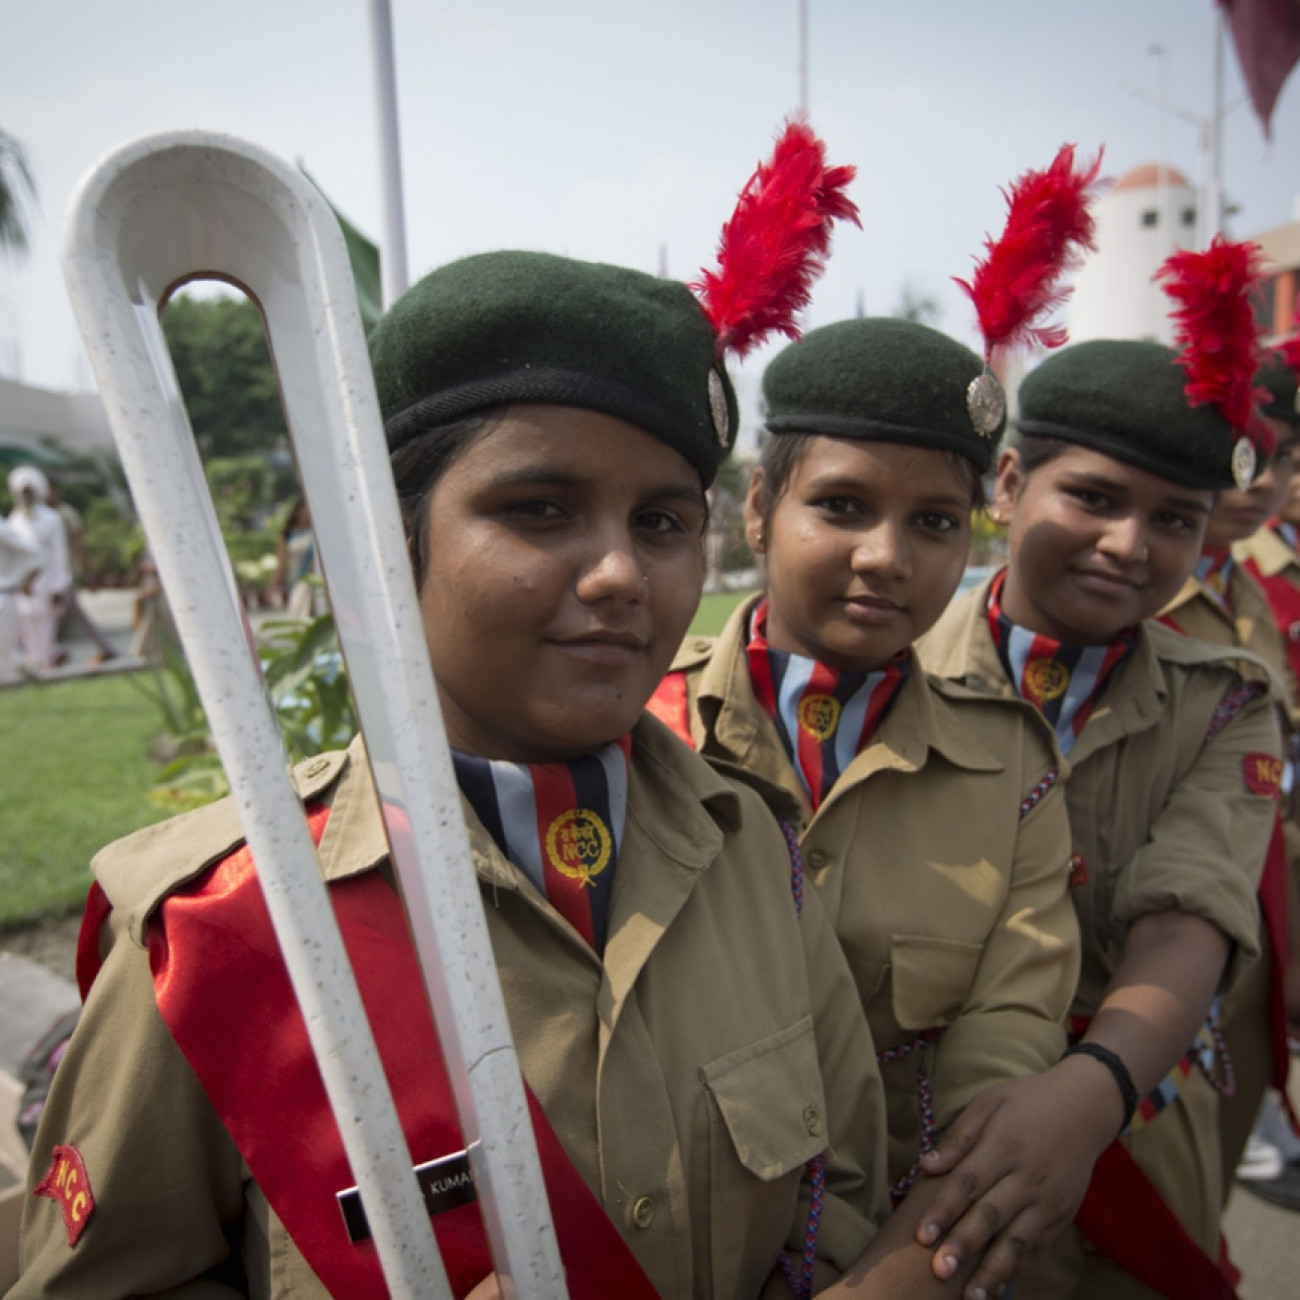 Cadets with the Baton at a welcoming ceremony in Rudrapur